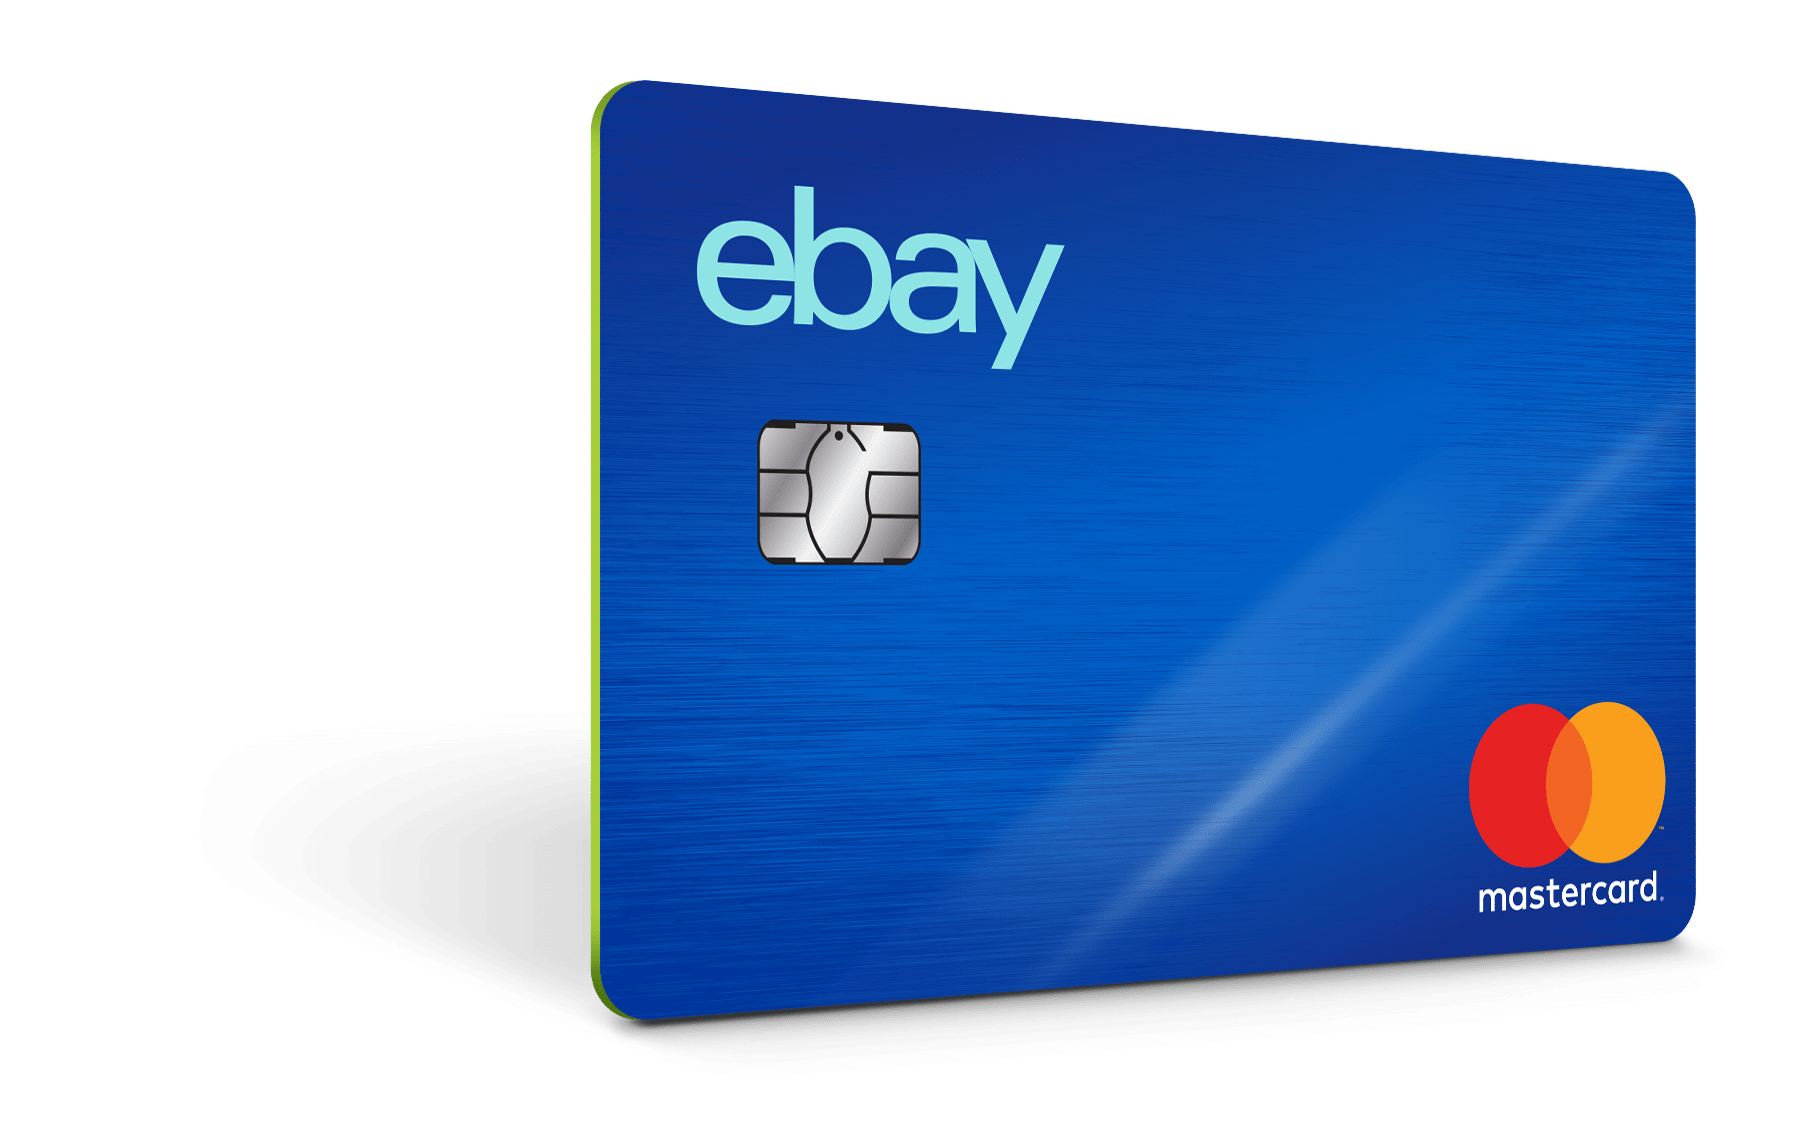 Free 50 Ebay Gift Card With A New Ebay Mastercard Account Freebies2deals